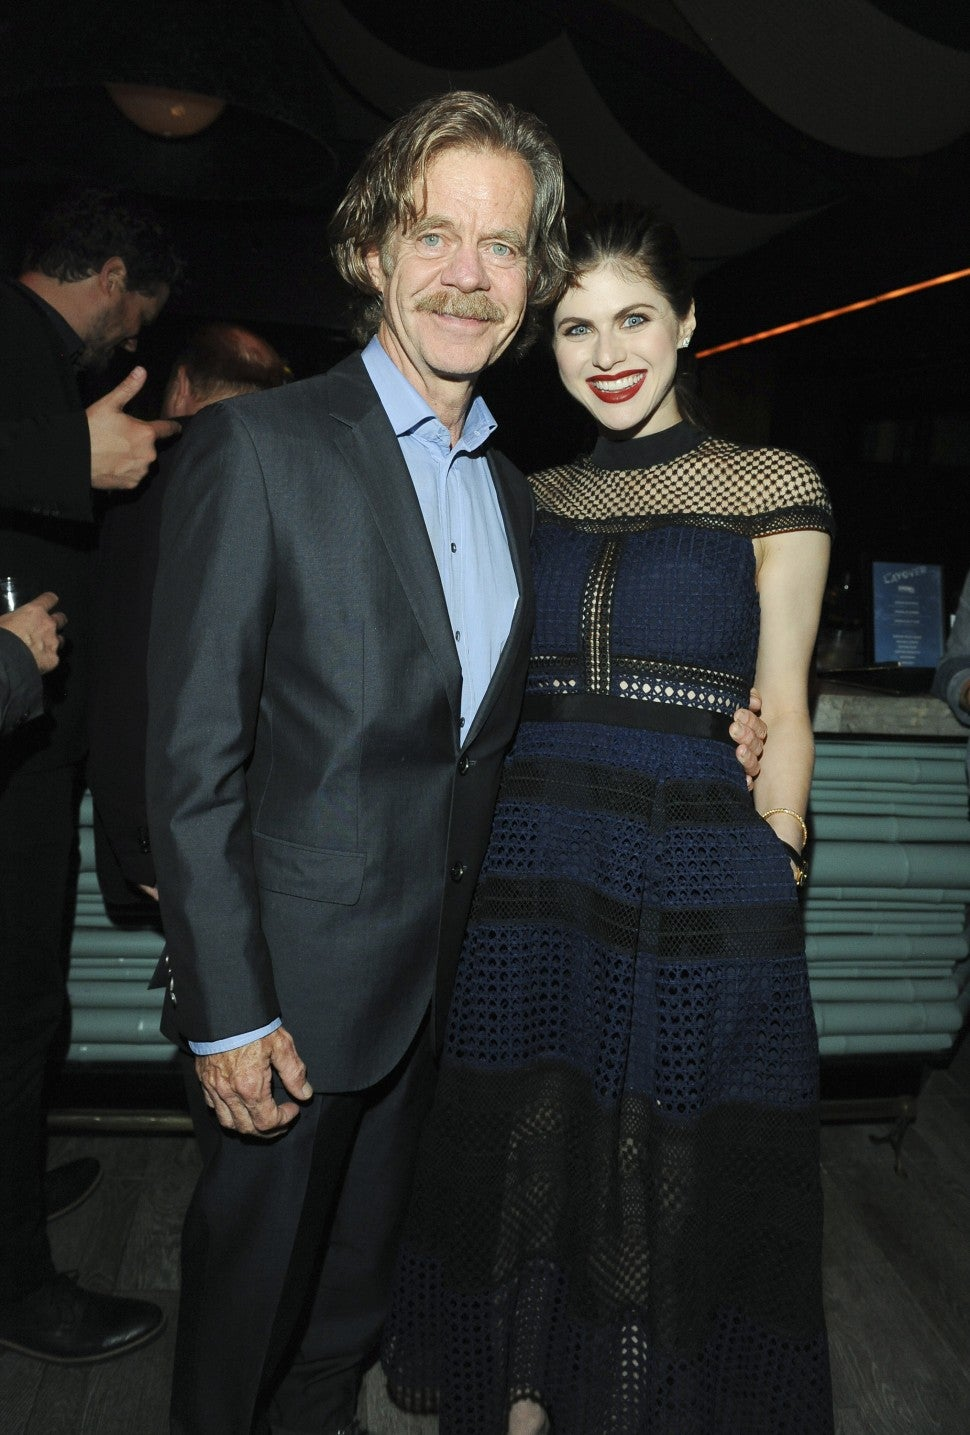 William H Macy and Alexandra Daddario